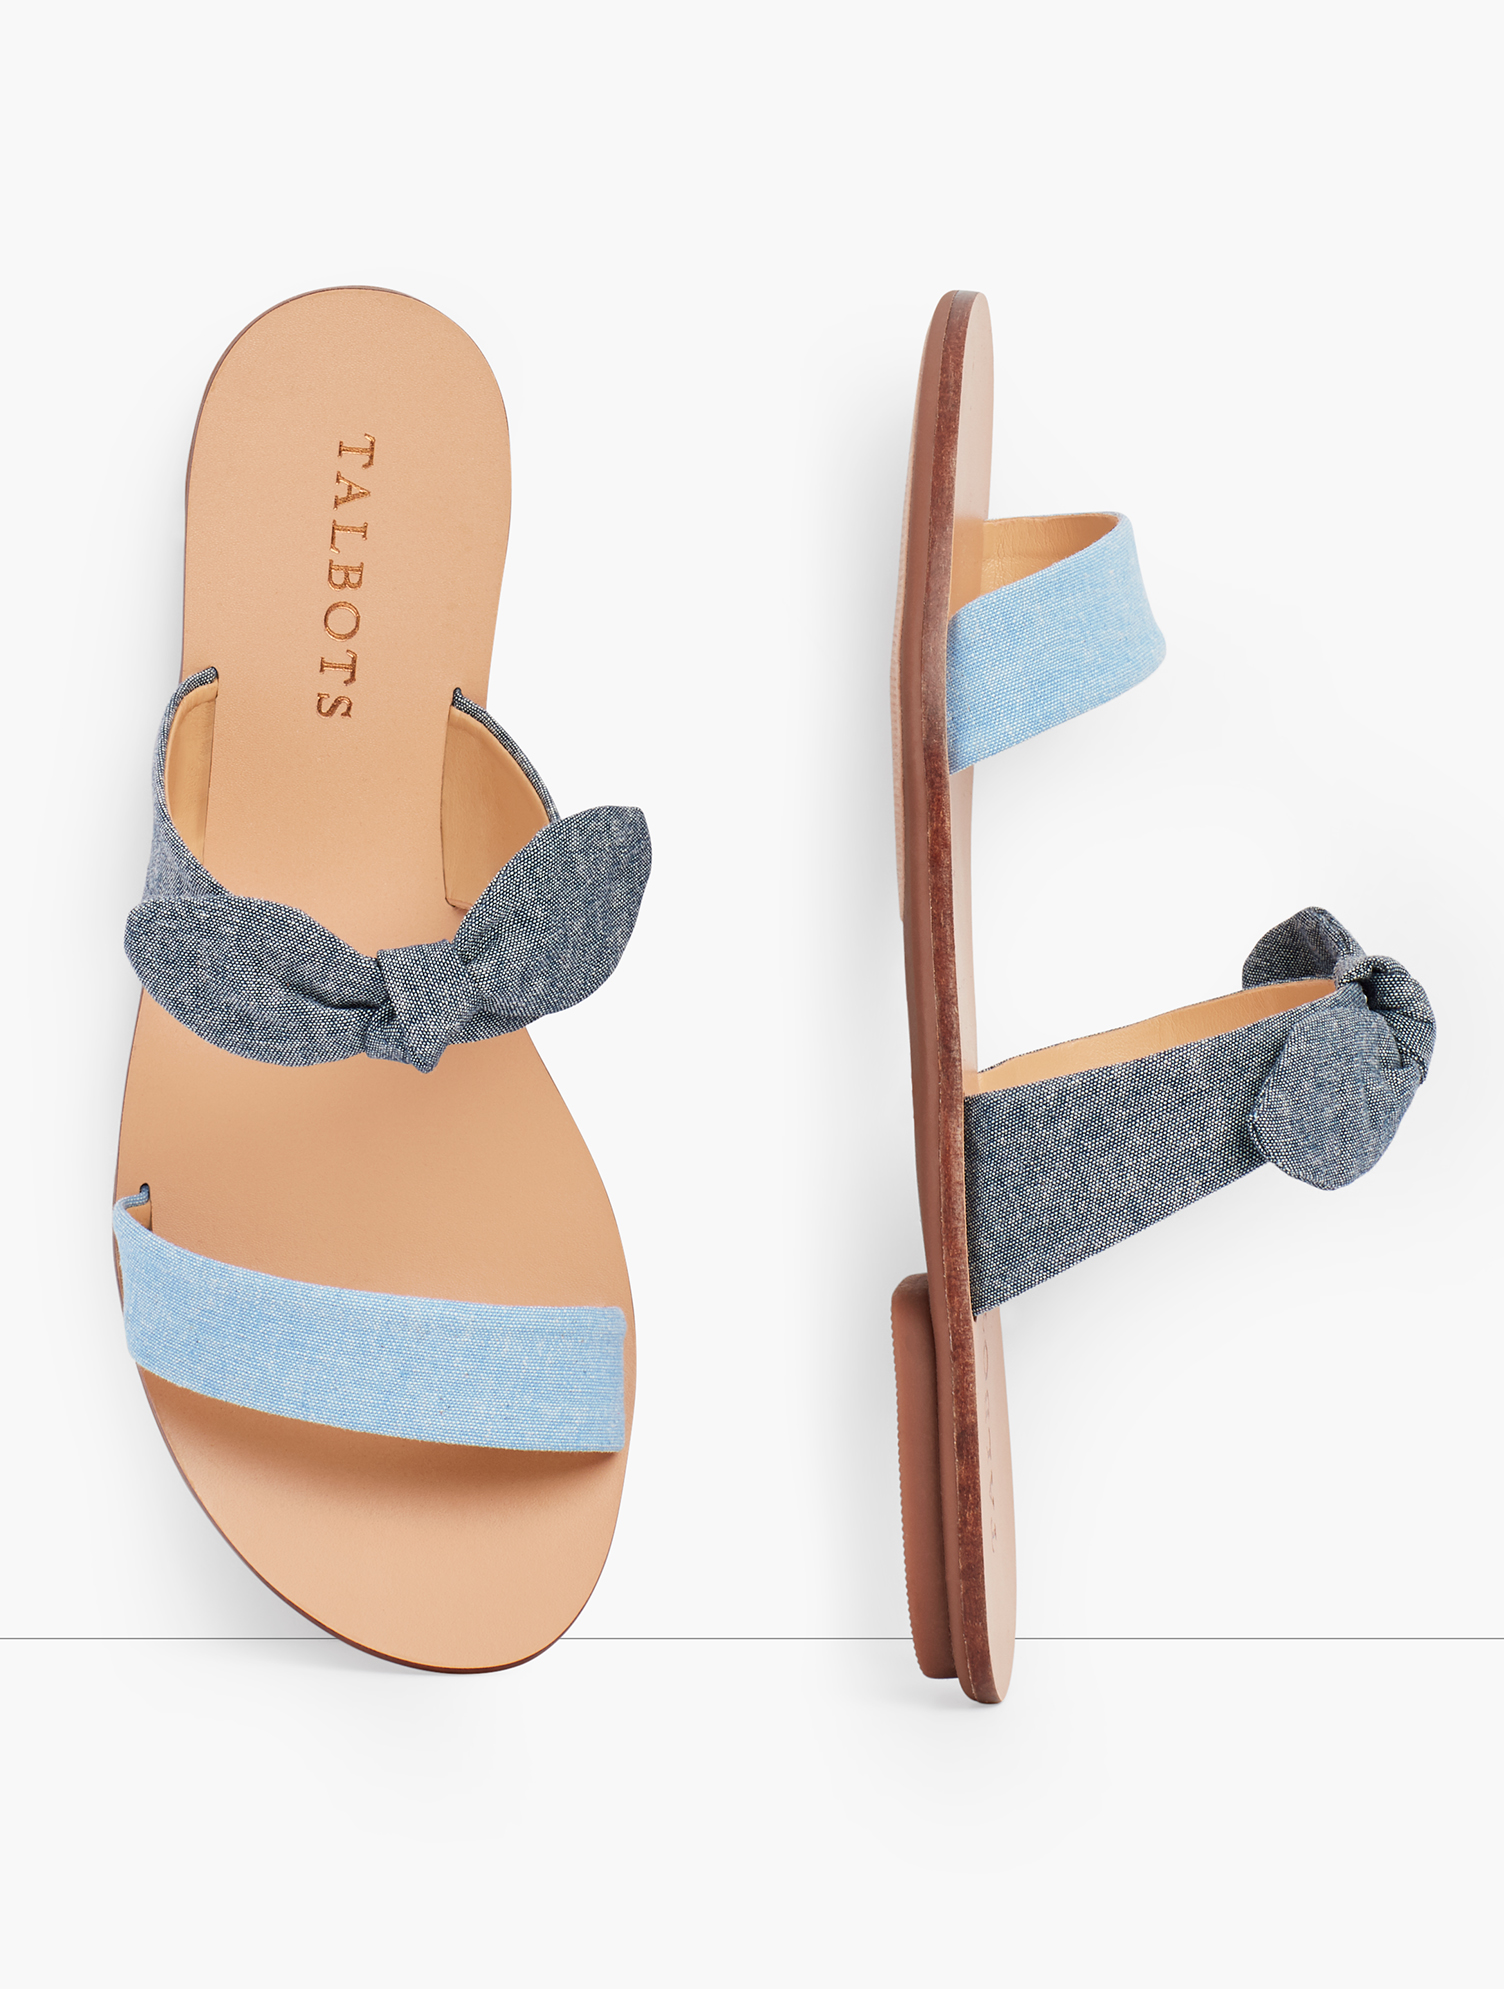 Easy-to-wear slides. On-trend chambray. With a fun knotted detail for extra style. features Gift Box/Gift Wrap is not available for this item 1/3 inches Heel Rubber Sole Imported Material: 100% cotton Hannah Knotted Slides - Chambray - Light Chambray/Dk Chambray - 11M - 100% Cotton Talbots